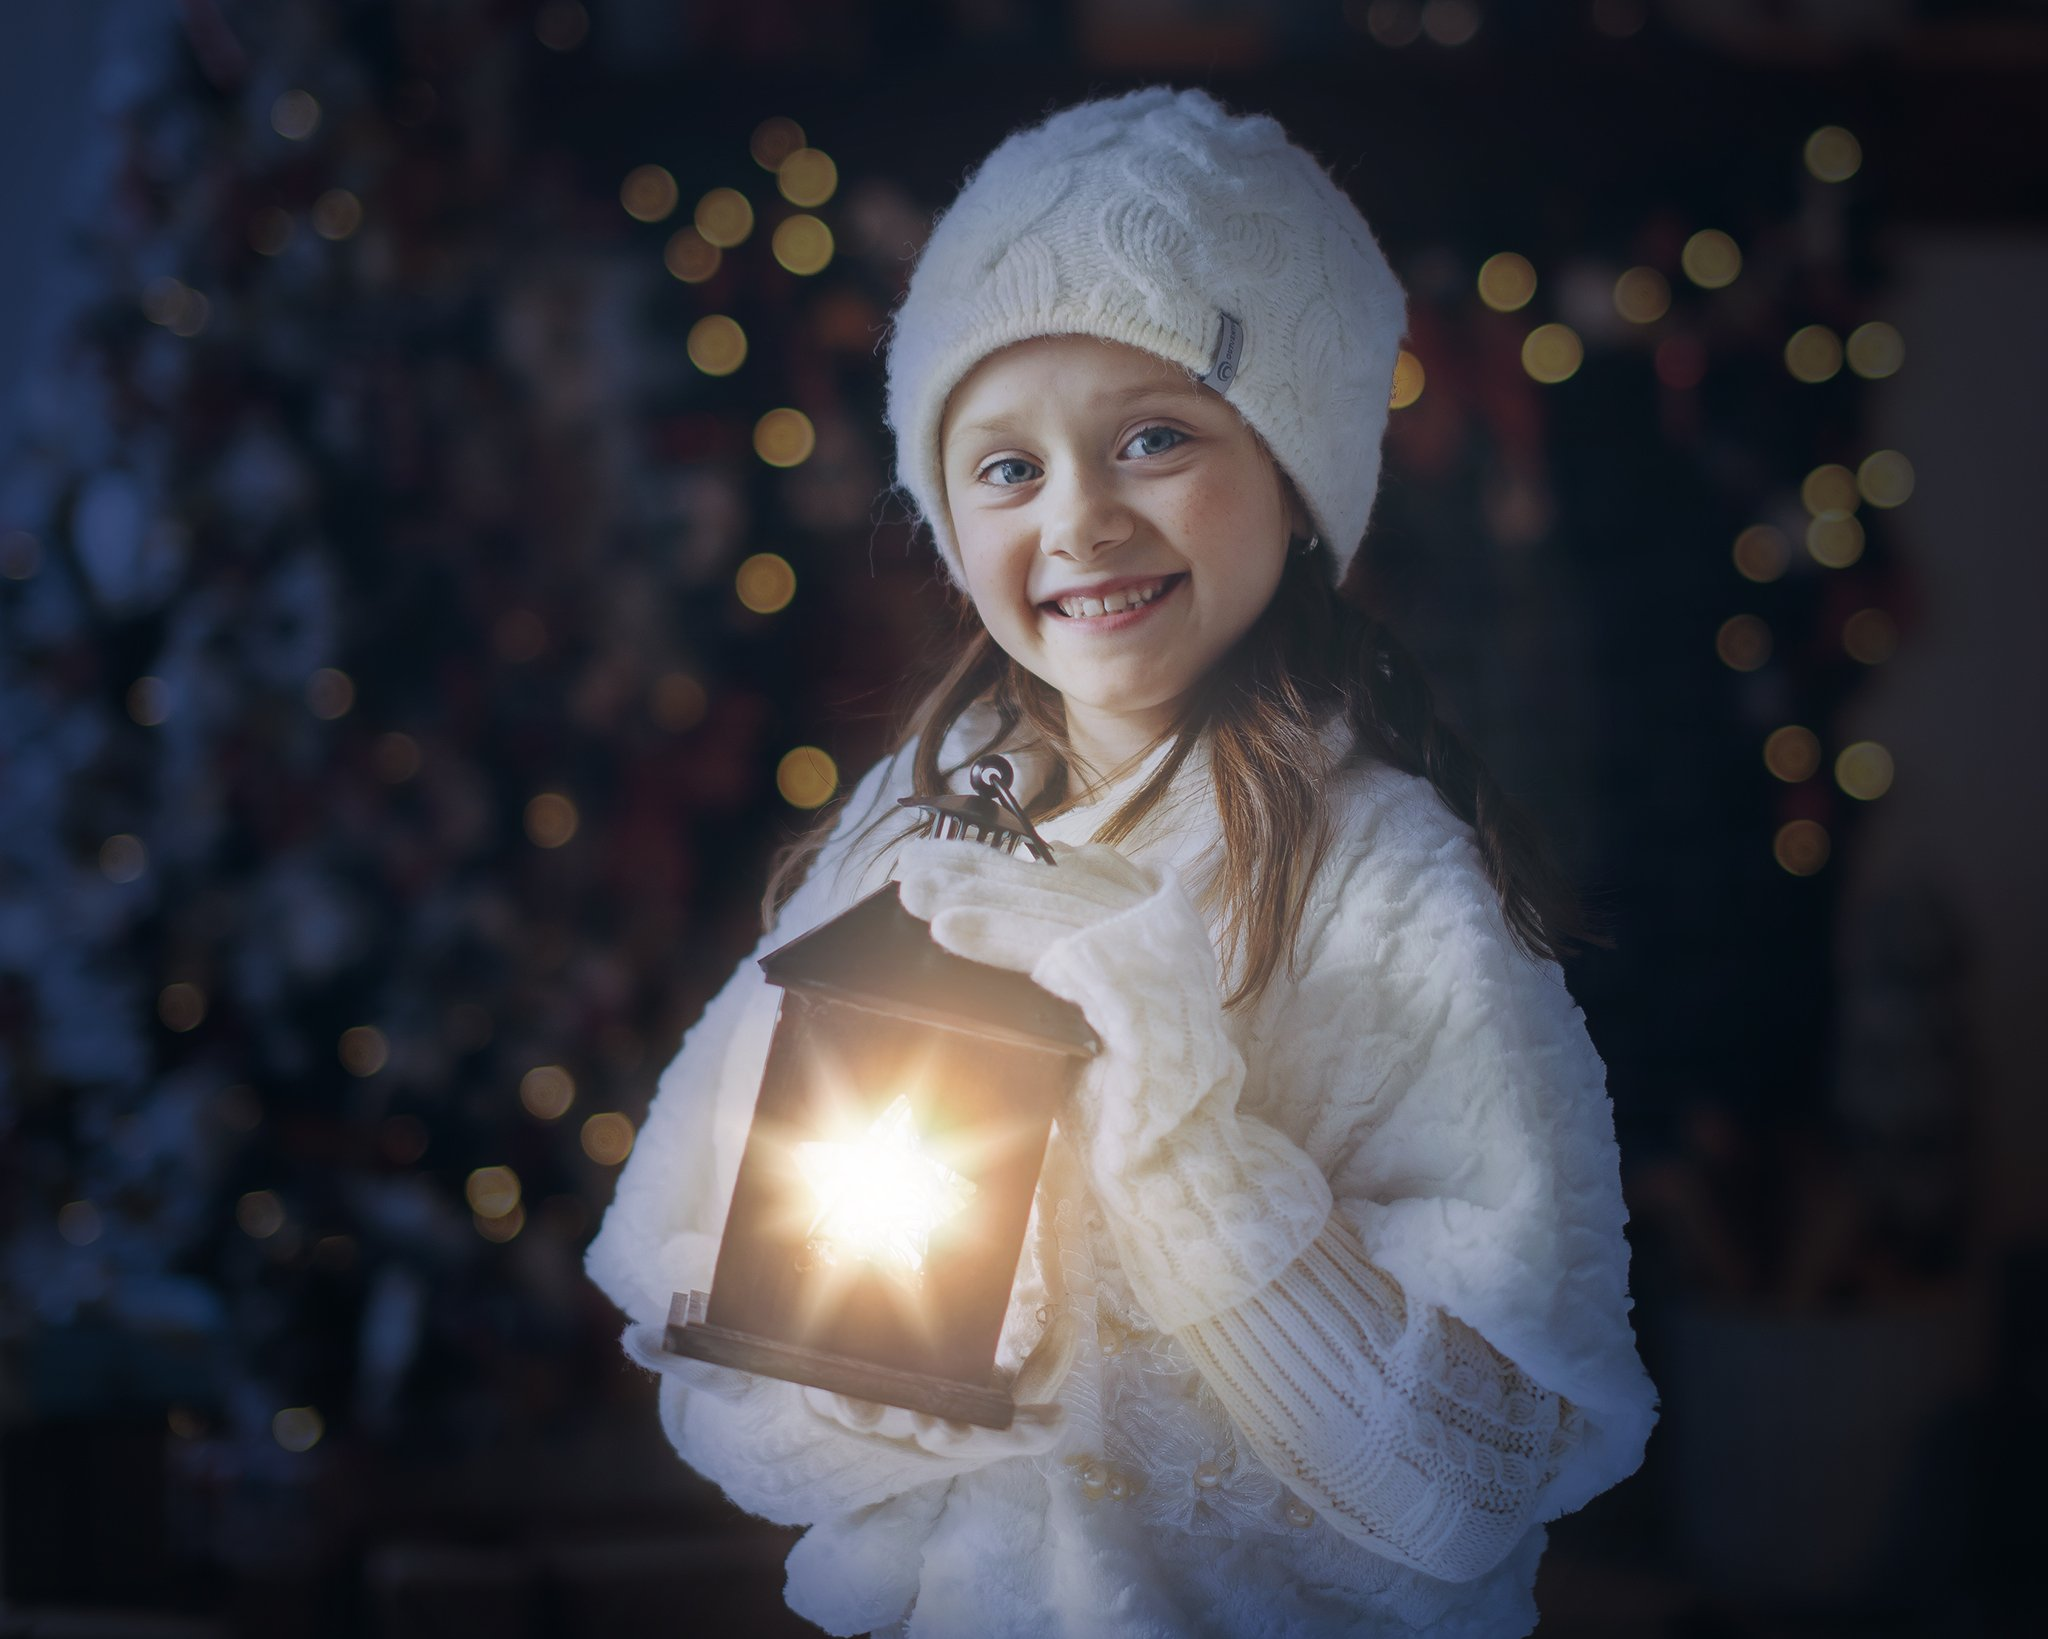 girl holding a lantern with a light overlay added in photoshop